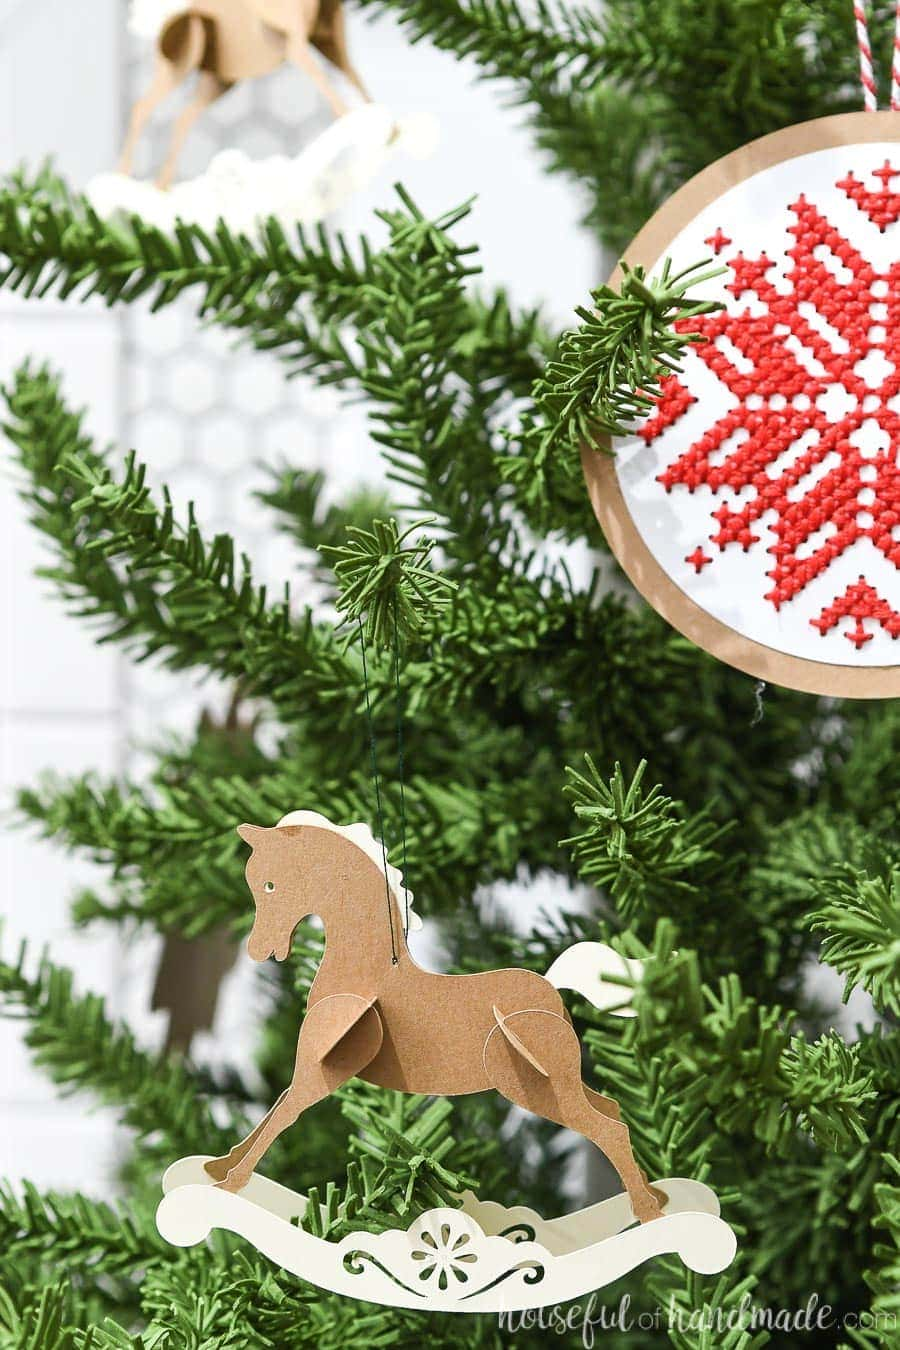 Rocking horse Christmas ornament made out of cardstock hanging on the Christmas tree.